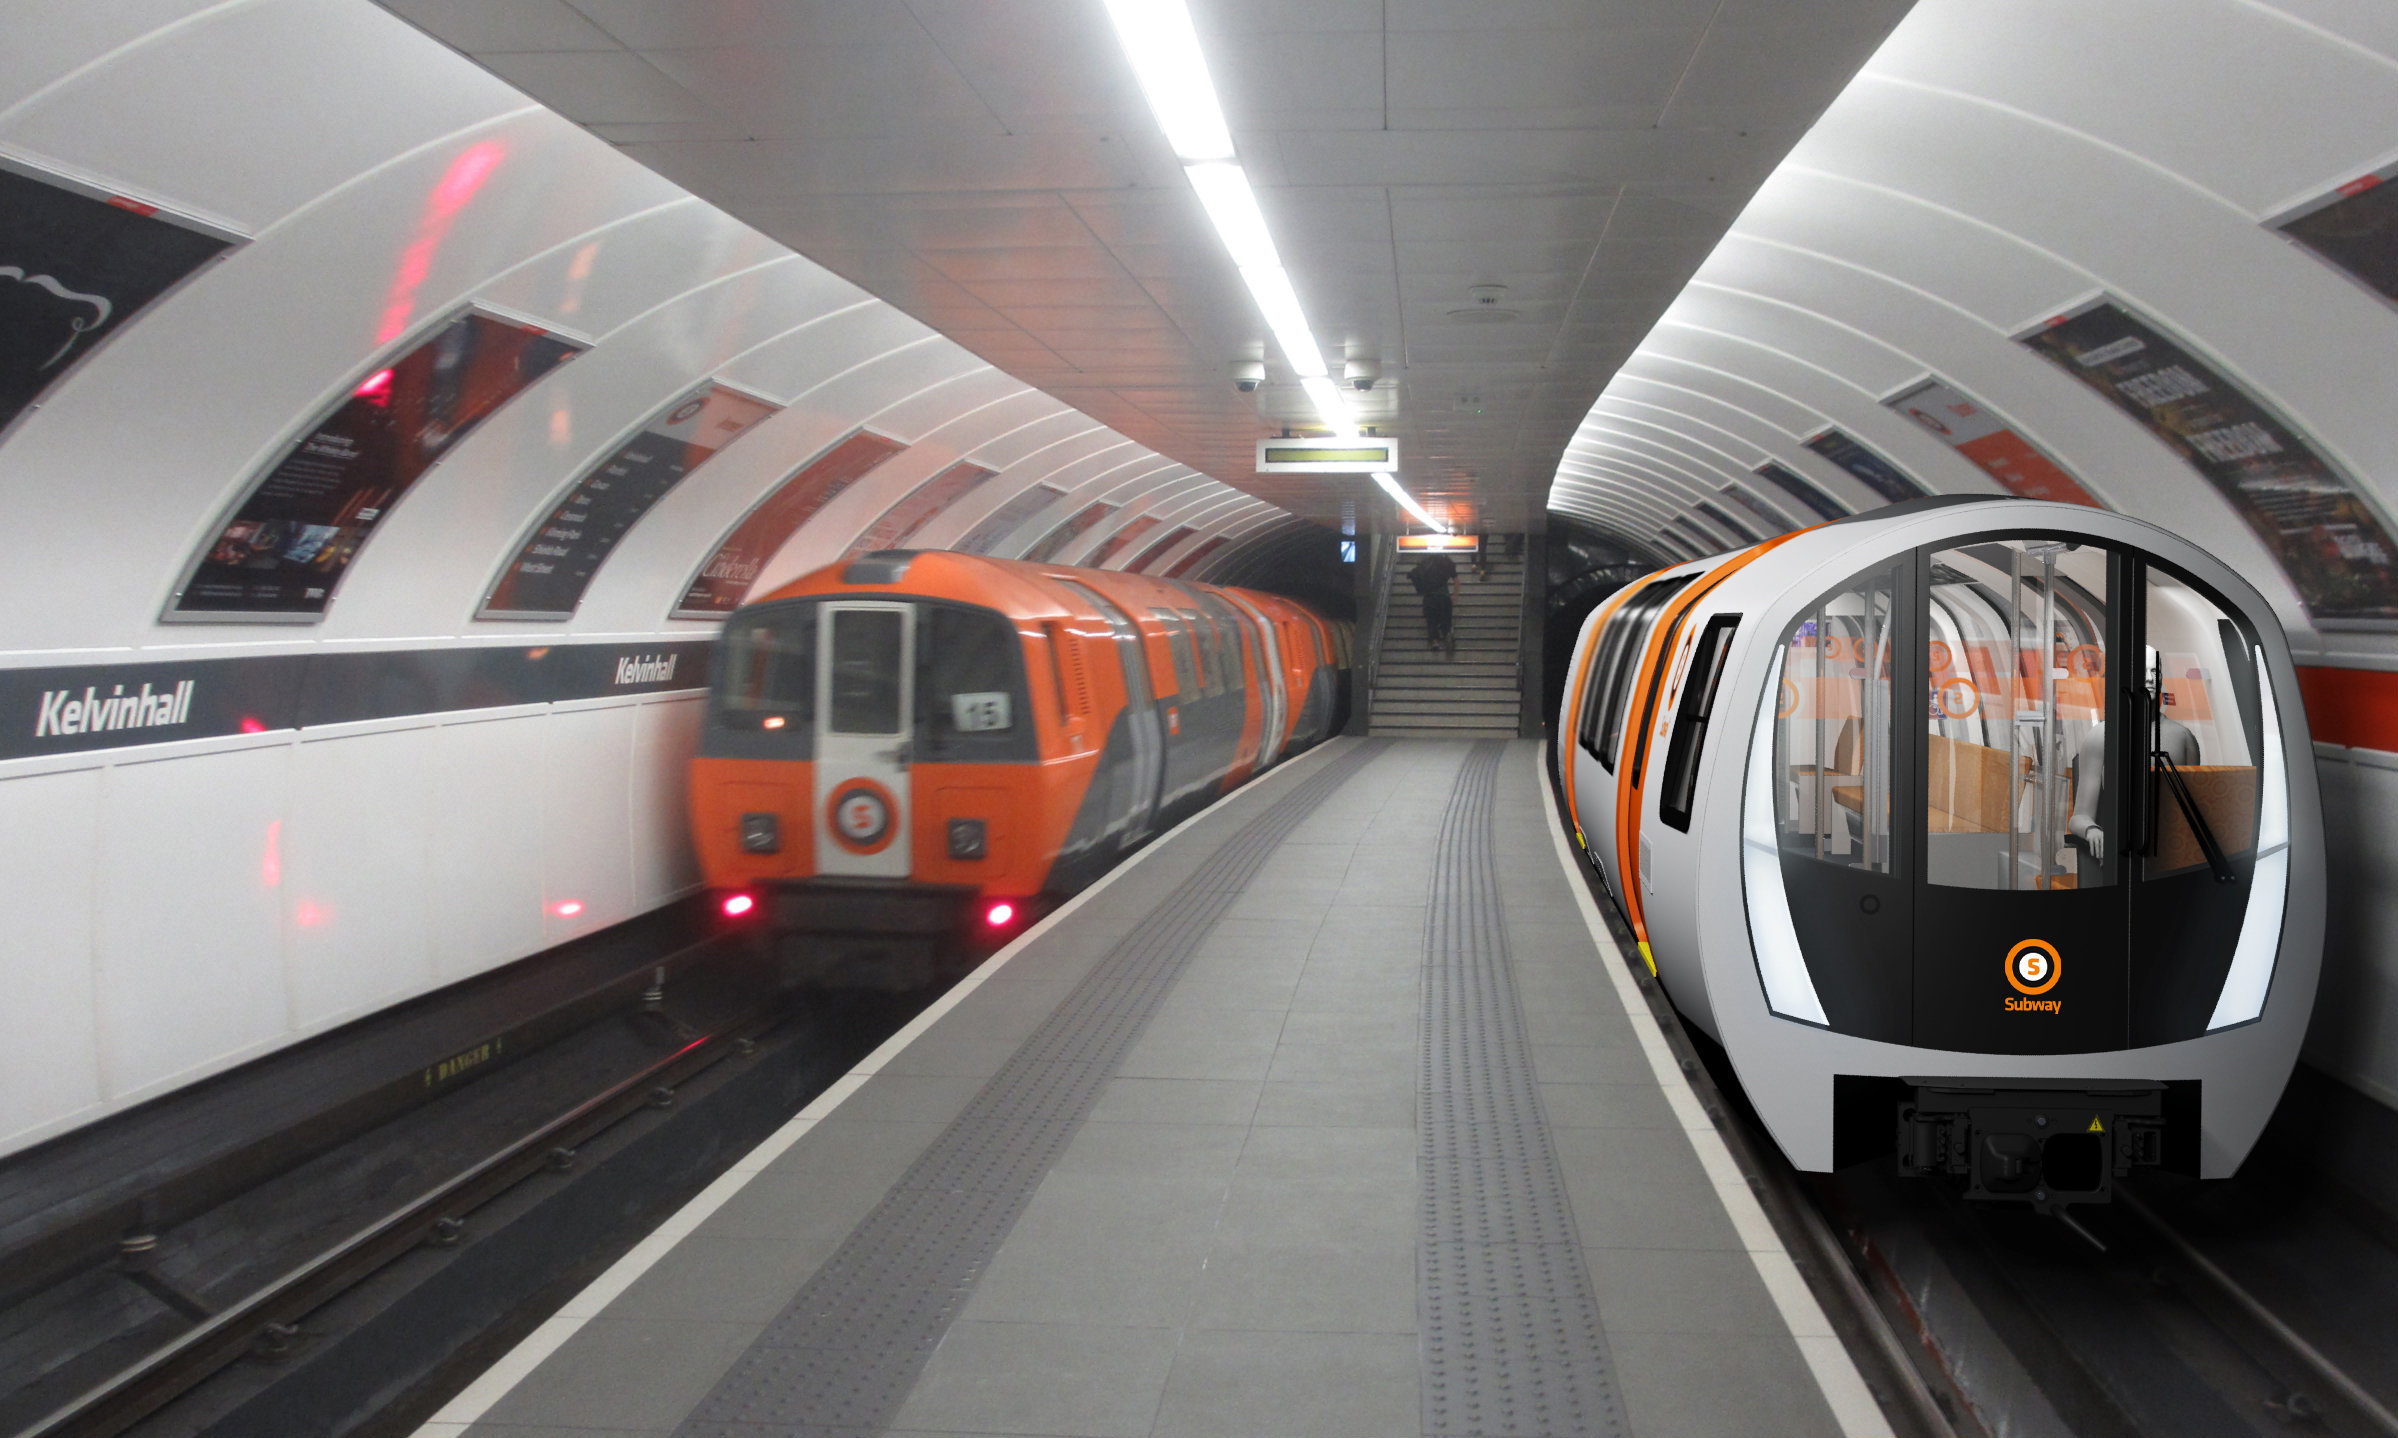 Glasgow Subway, nicknamed The Clockwork Orange